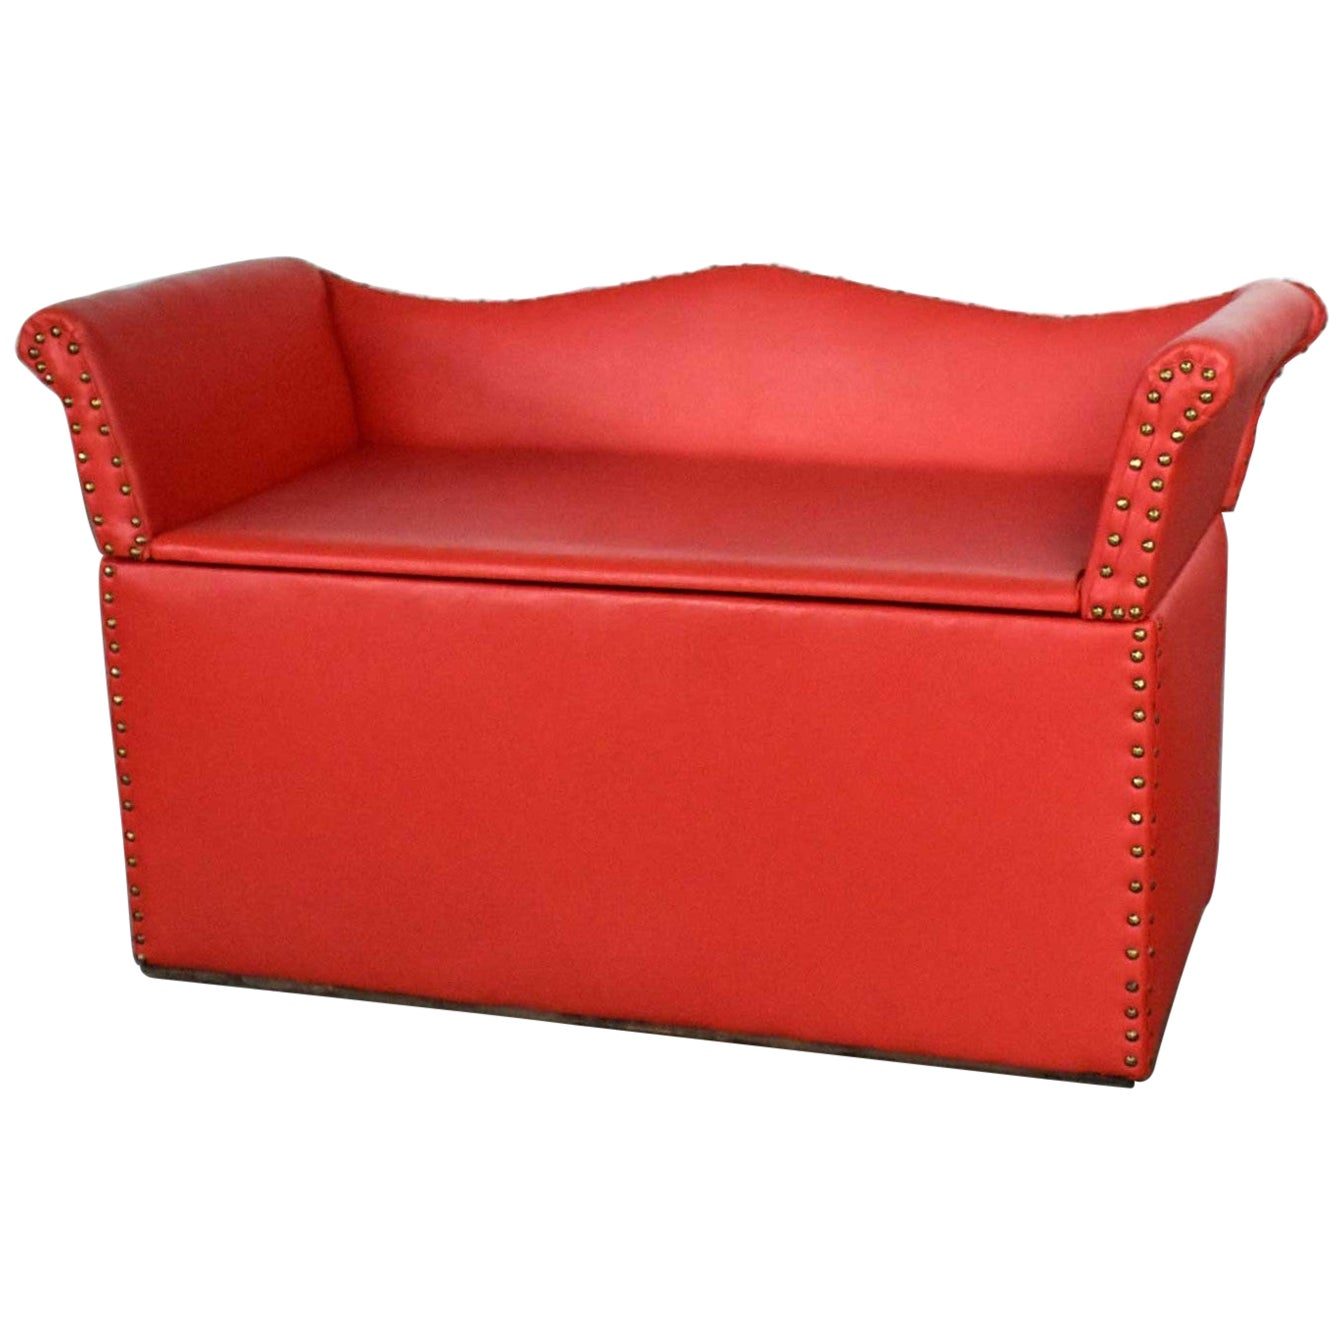 Vintage Coral Vinyl Faux Leather Cedar Lined Storage Bench Settee Nailhead Det